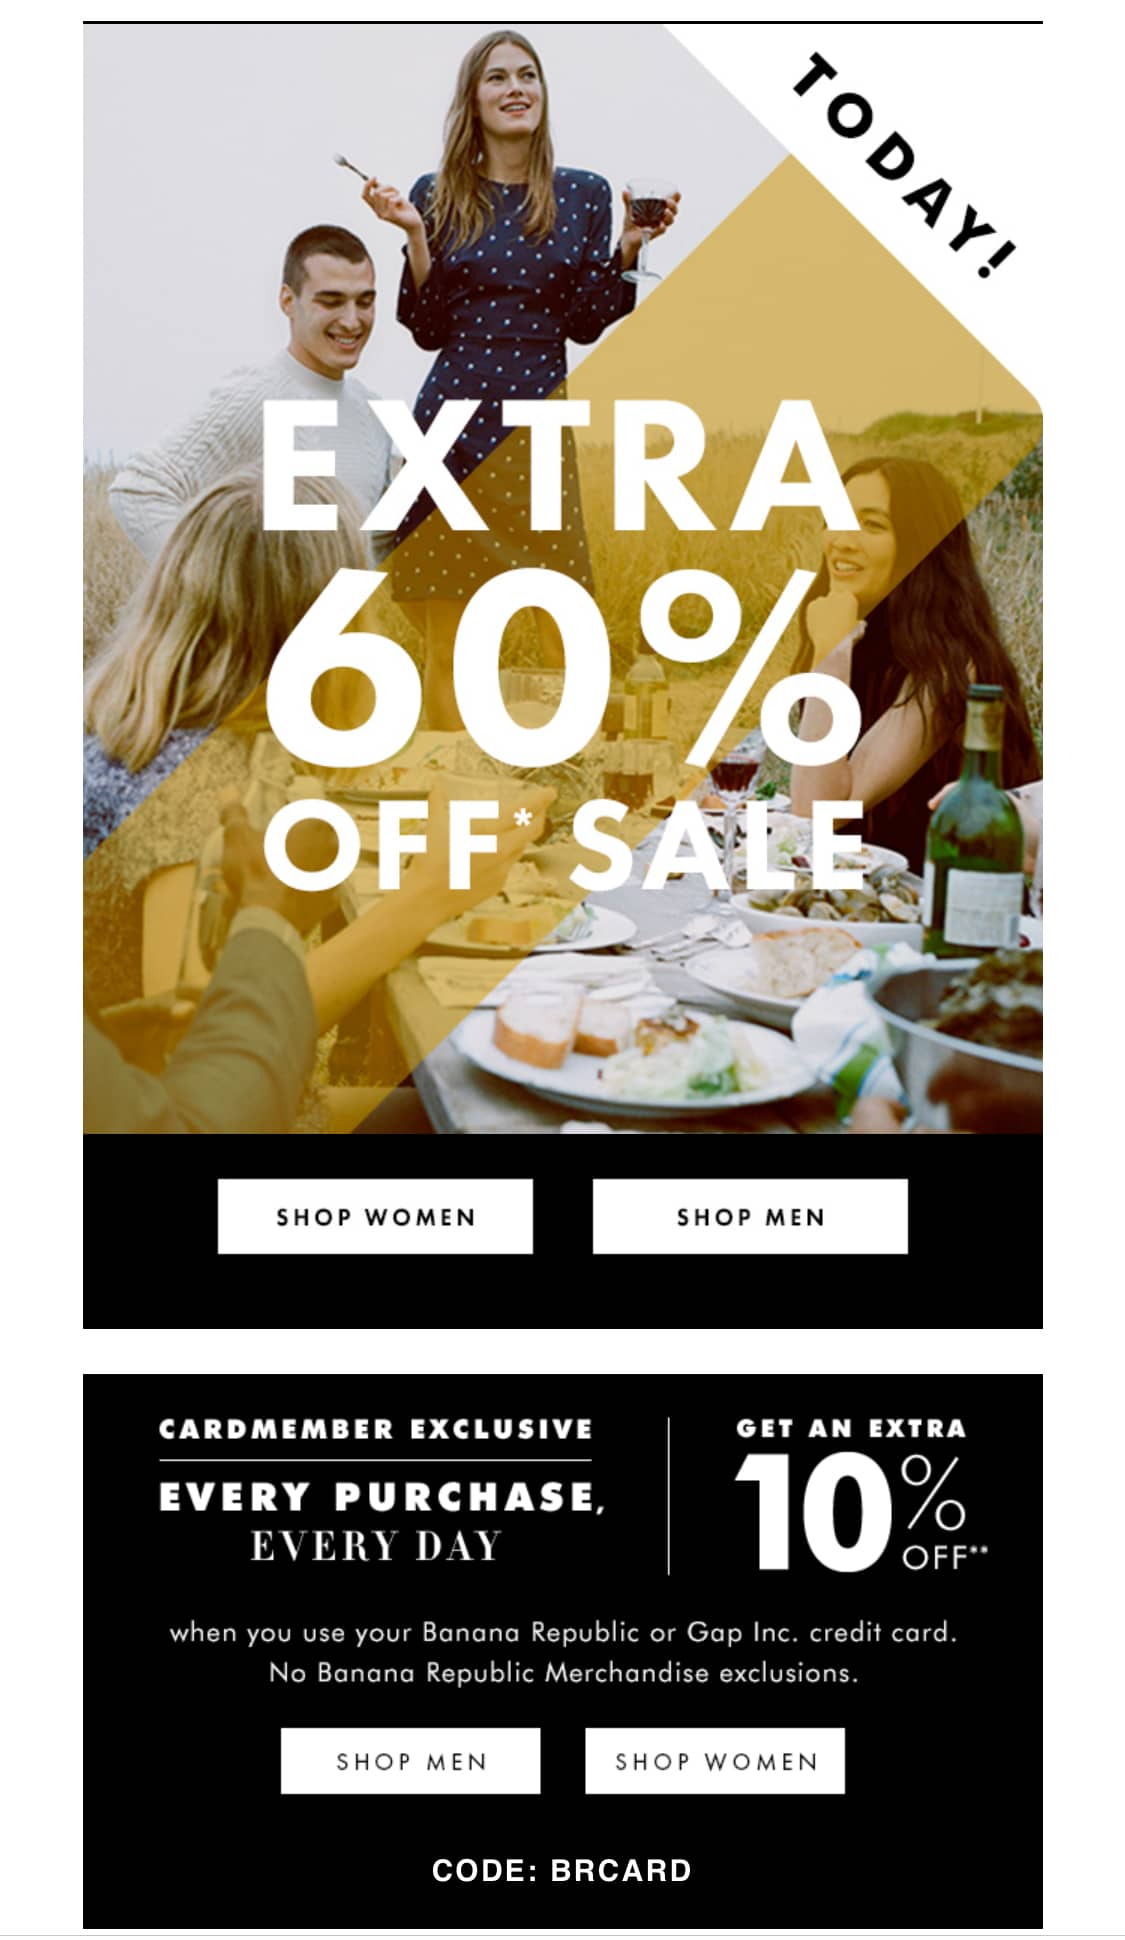 60% off Sale Items Minimal Exclusions at Banana Republic in Store and Online +10% with Gap Family Card